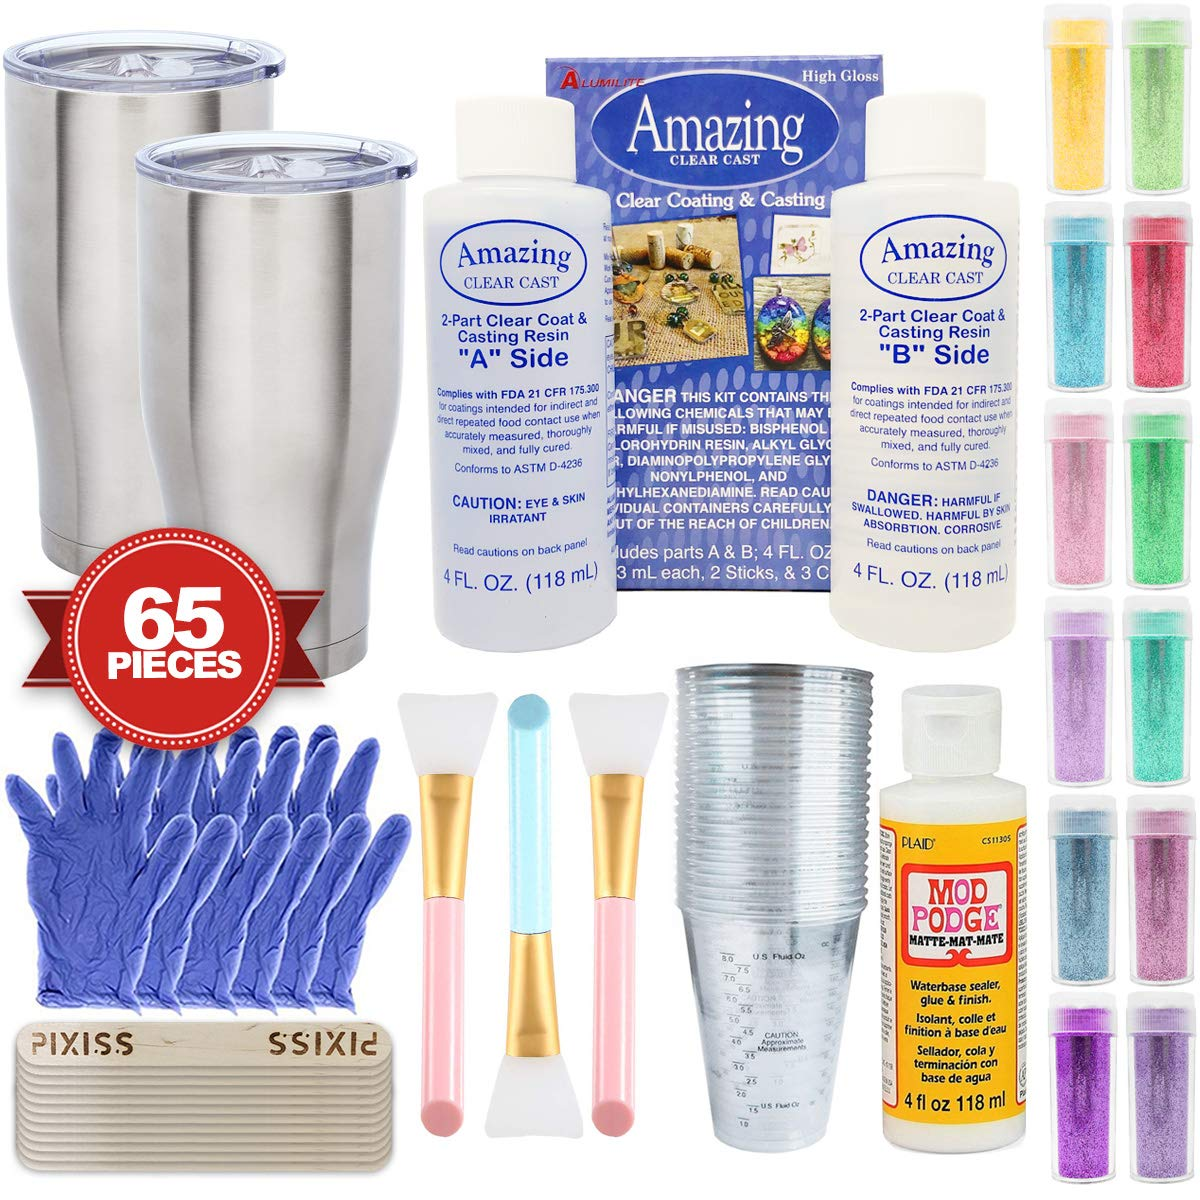 Epoxy Glitter Tumblers Kit, Includes Amazing Clear Cast Epoxy for Tumblers, Silicone Epoxy Resin Brushes, Glitter, Mod Podge by GRAS Art Bundles (Image #1)